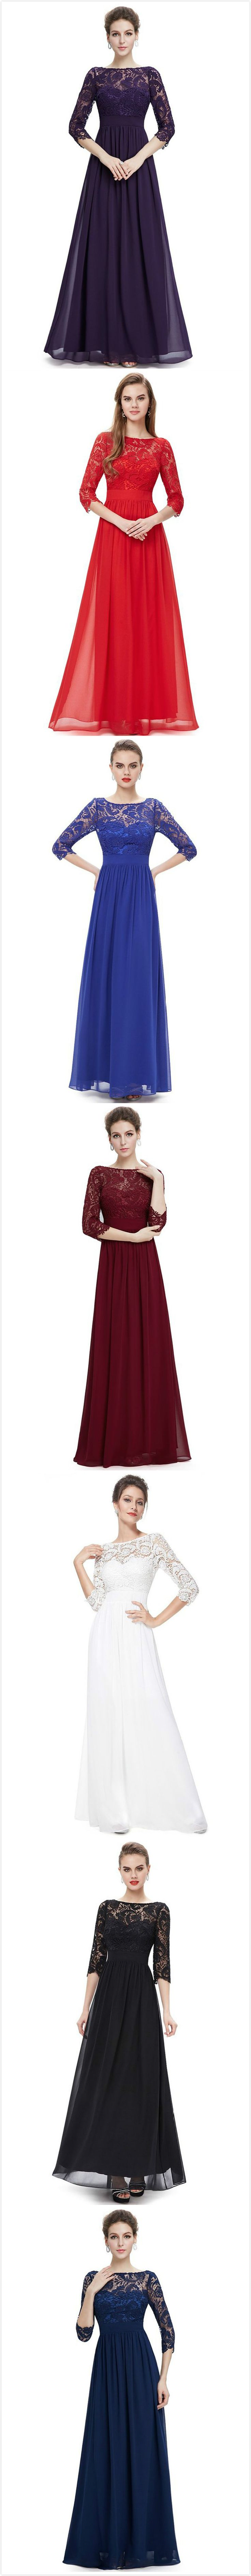 Women's Lace Paneled Long Sleeve Floor Length Evening Dress.Check more from www.oasap.com .